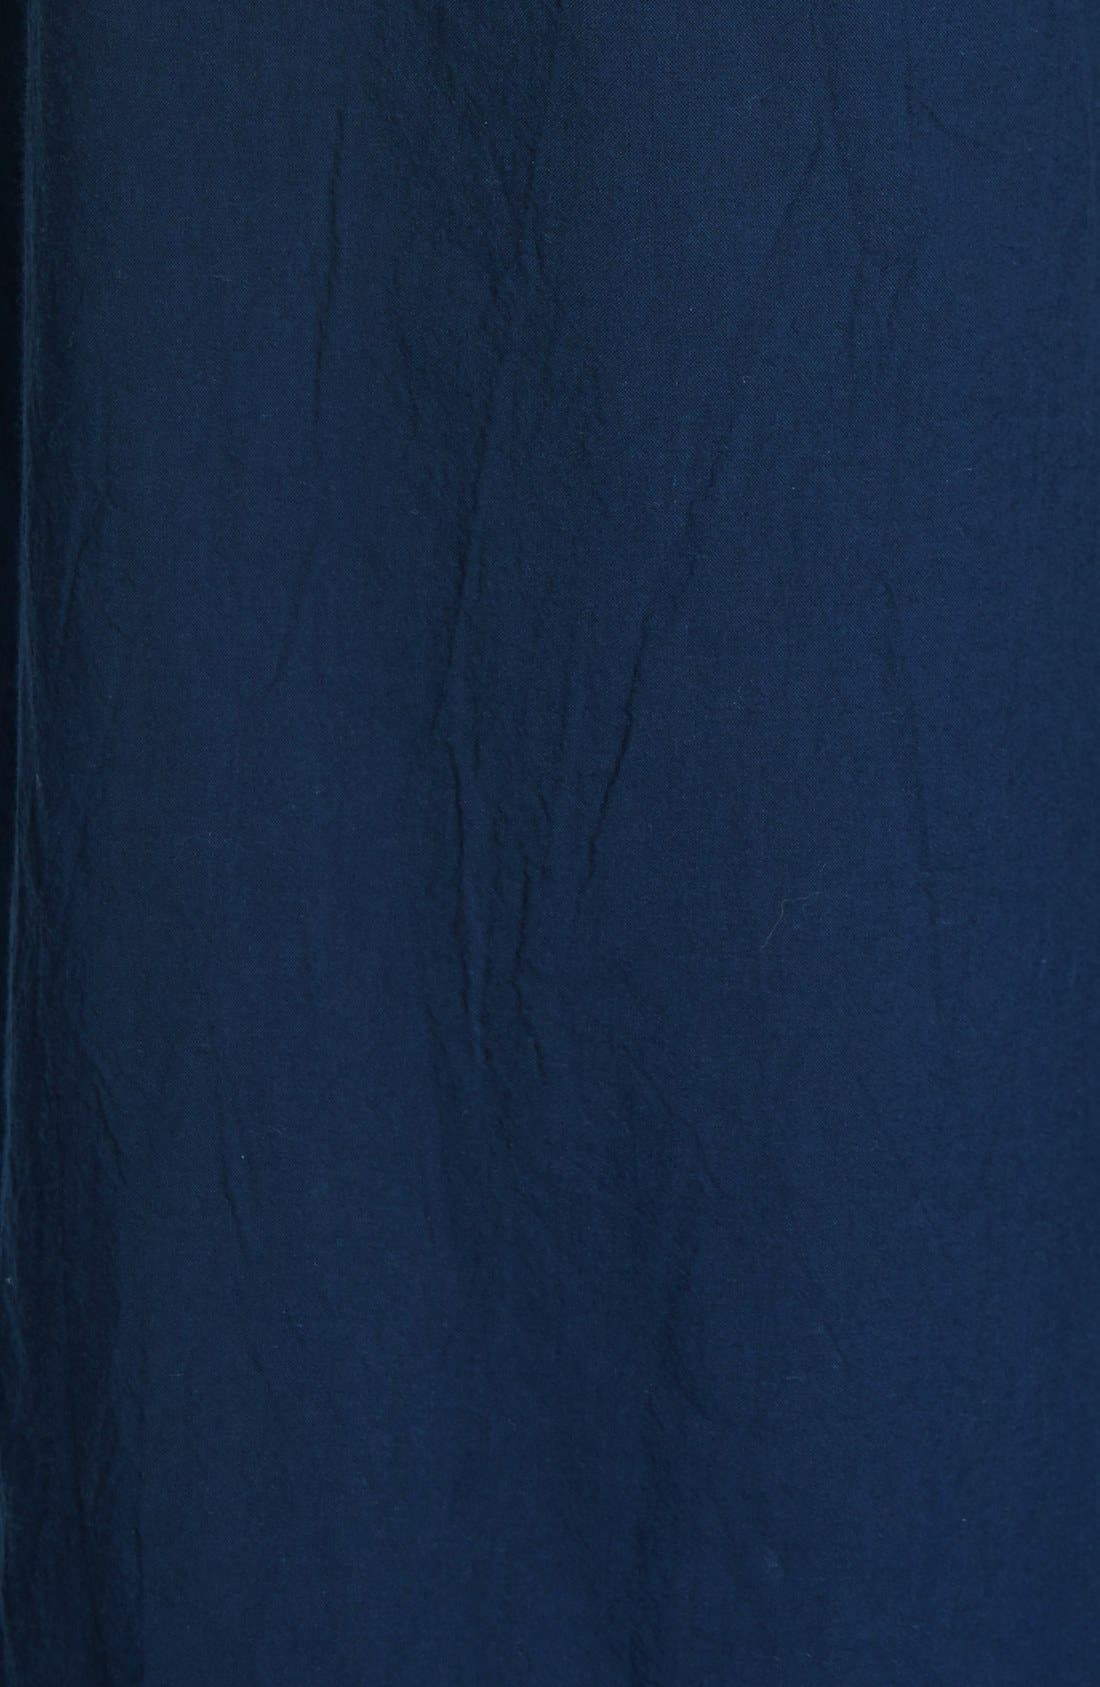 Cover-Up Pants,                             Alternate thumbnail 5, color,                             Mare Navy